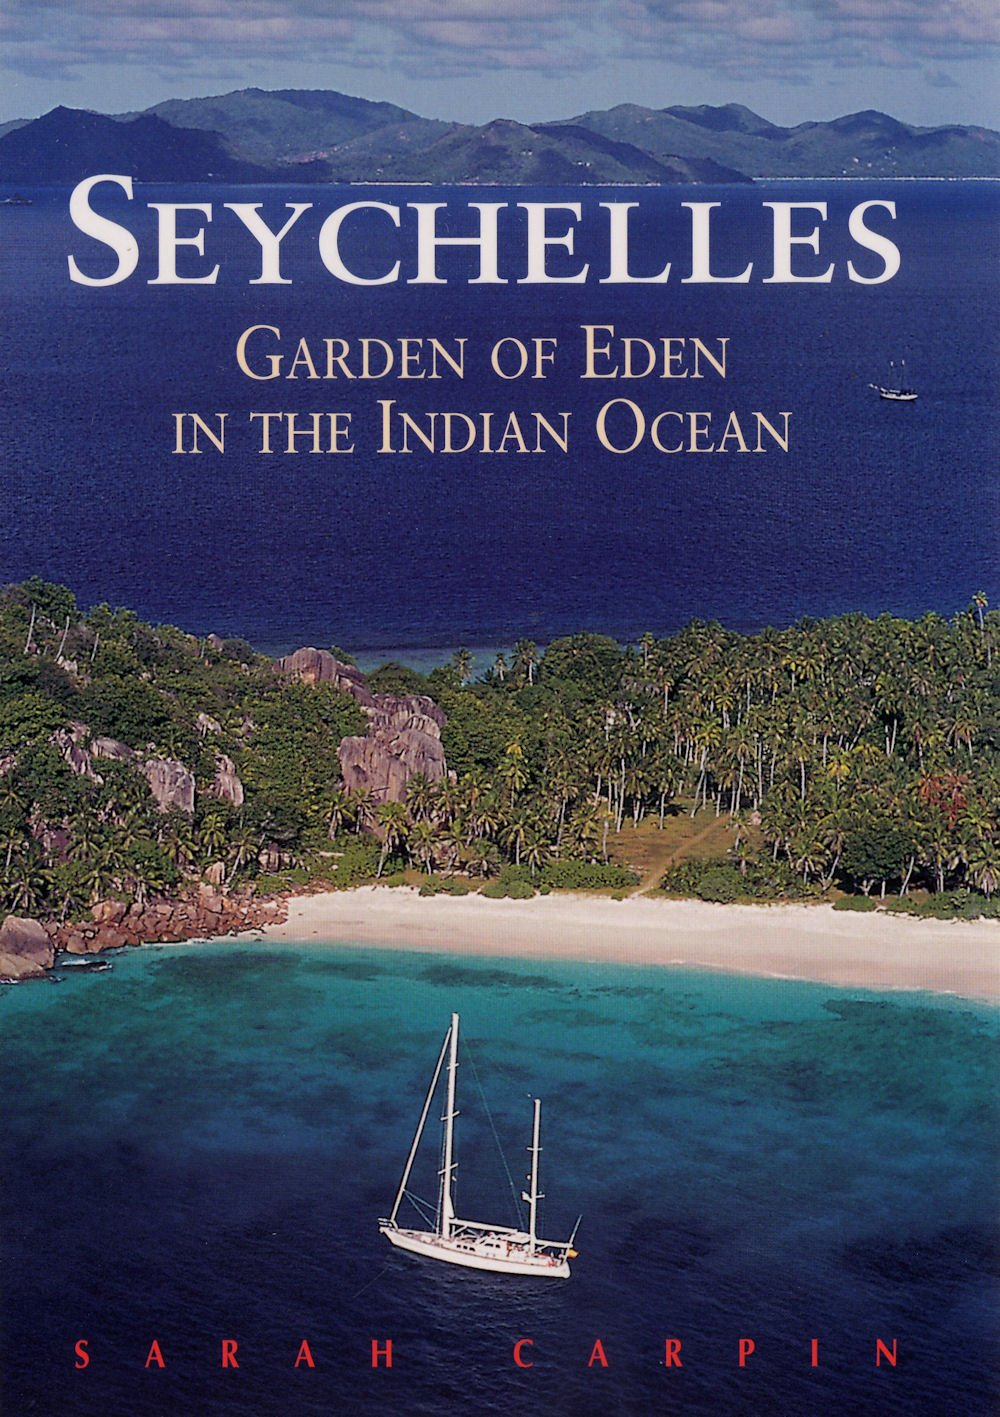 Seychelles Garden Of Eden In The Indian Ocean by Sarah Carpin| ©Odyssey Books & Maps